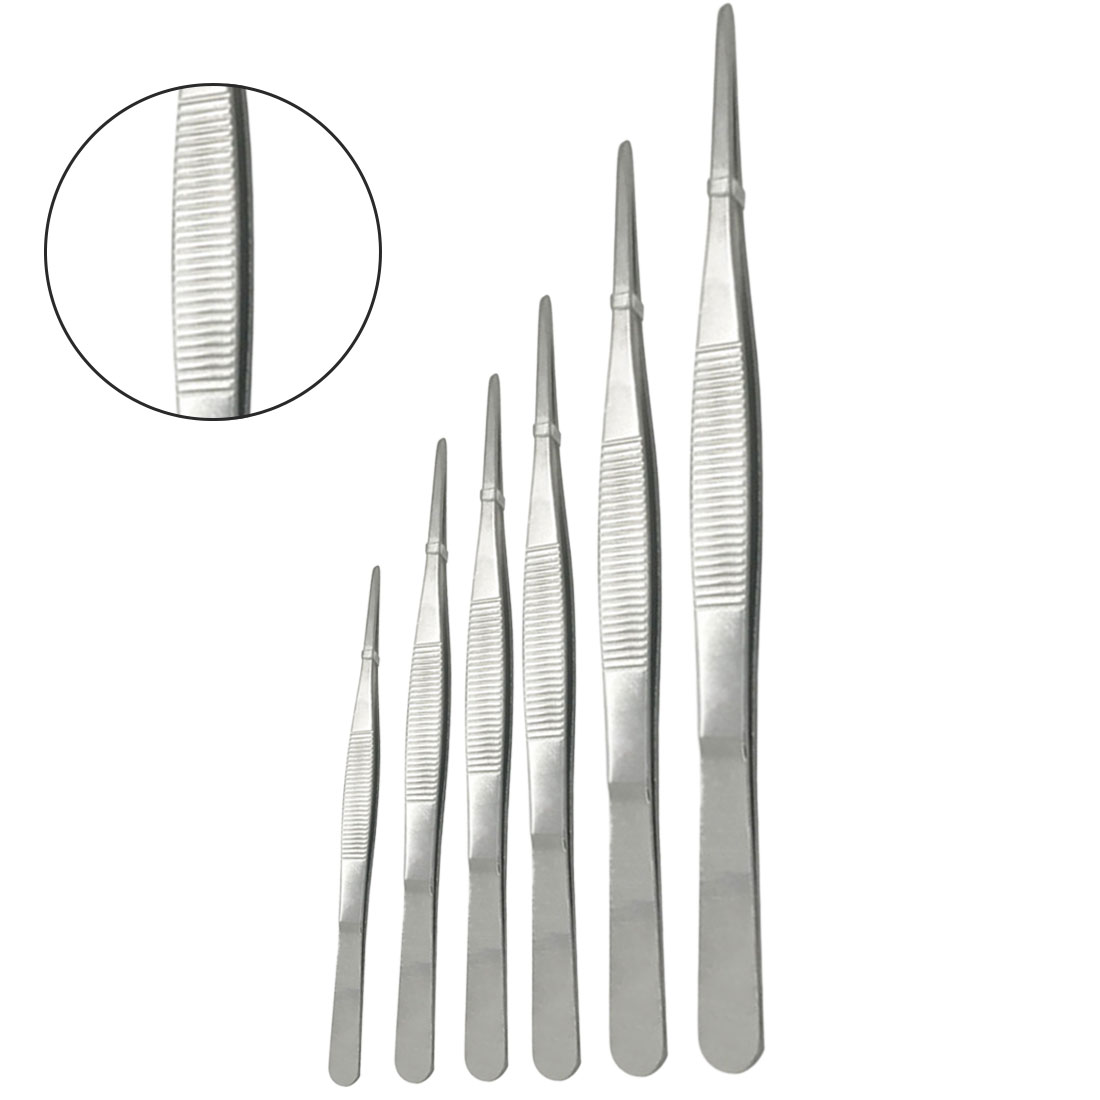 Stainless Steel Tweezers 12.5cm/16cm/18cm/20cm/25cm/30cmMedical Dental Precision Long Straight Forceps Tweezers